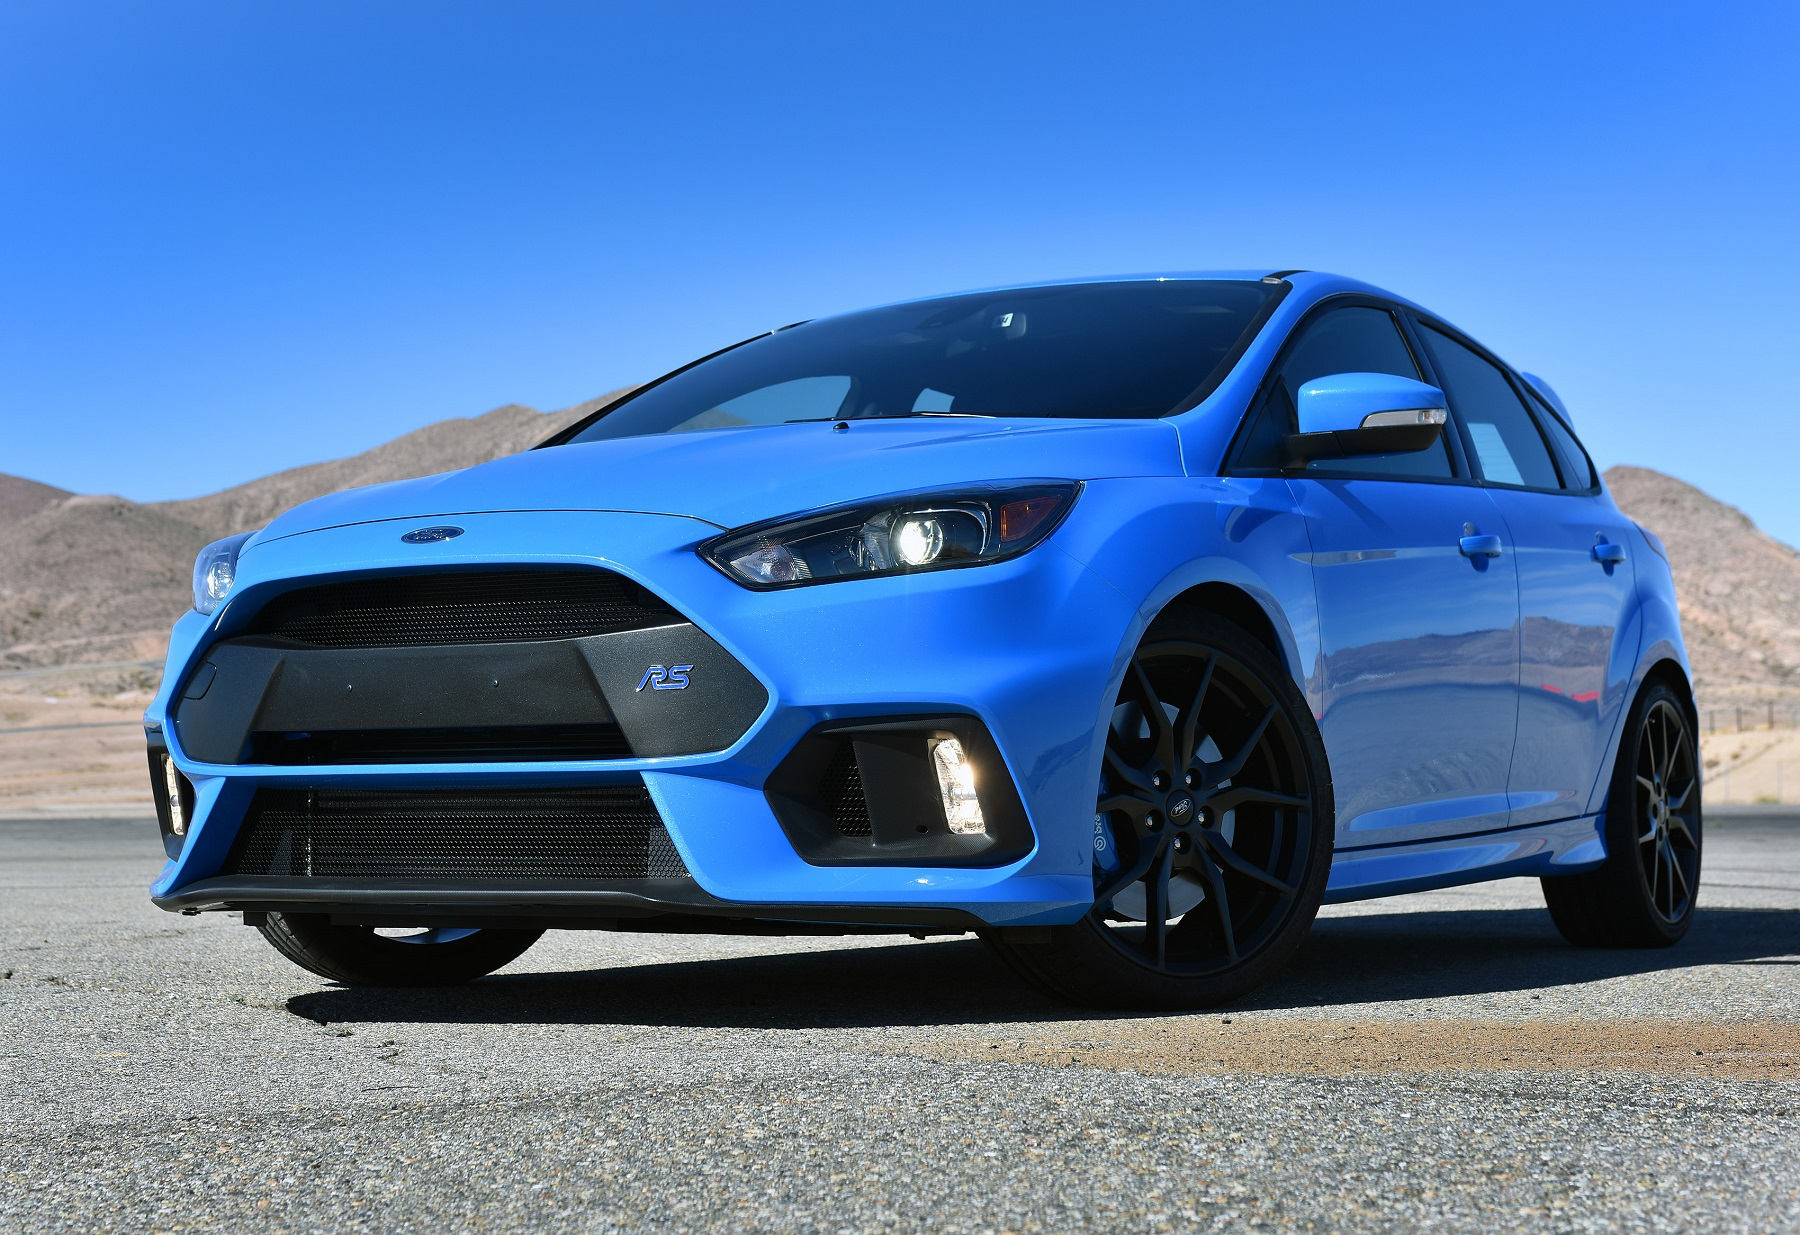 2017 ford focus rs hot performance hatch new on wheels groovecar. Black Bedroom Furniture Sets. Home Design Ideas